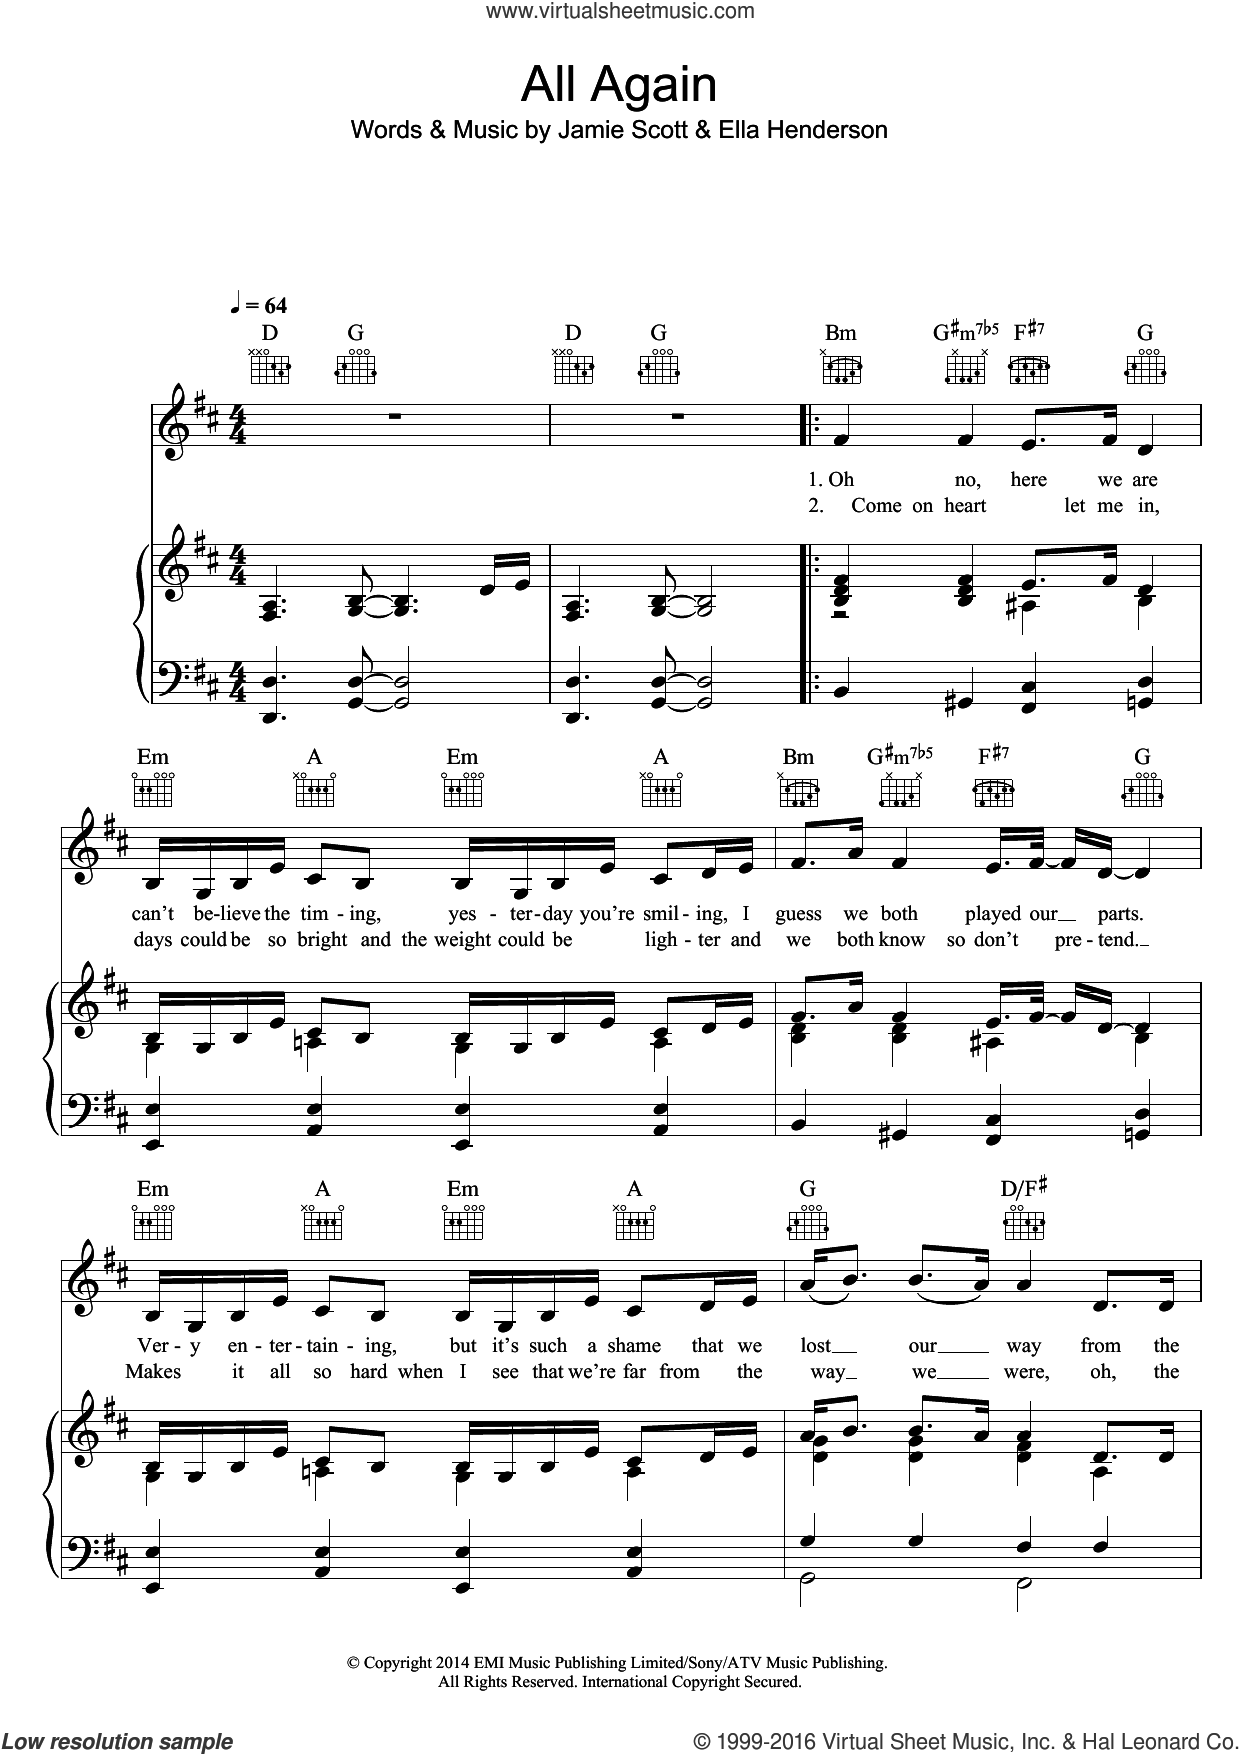 All Again sheet music for voice, piano or guitar by Ella Henderson and Jamie Scott. Score Image Preview.